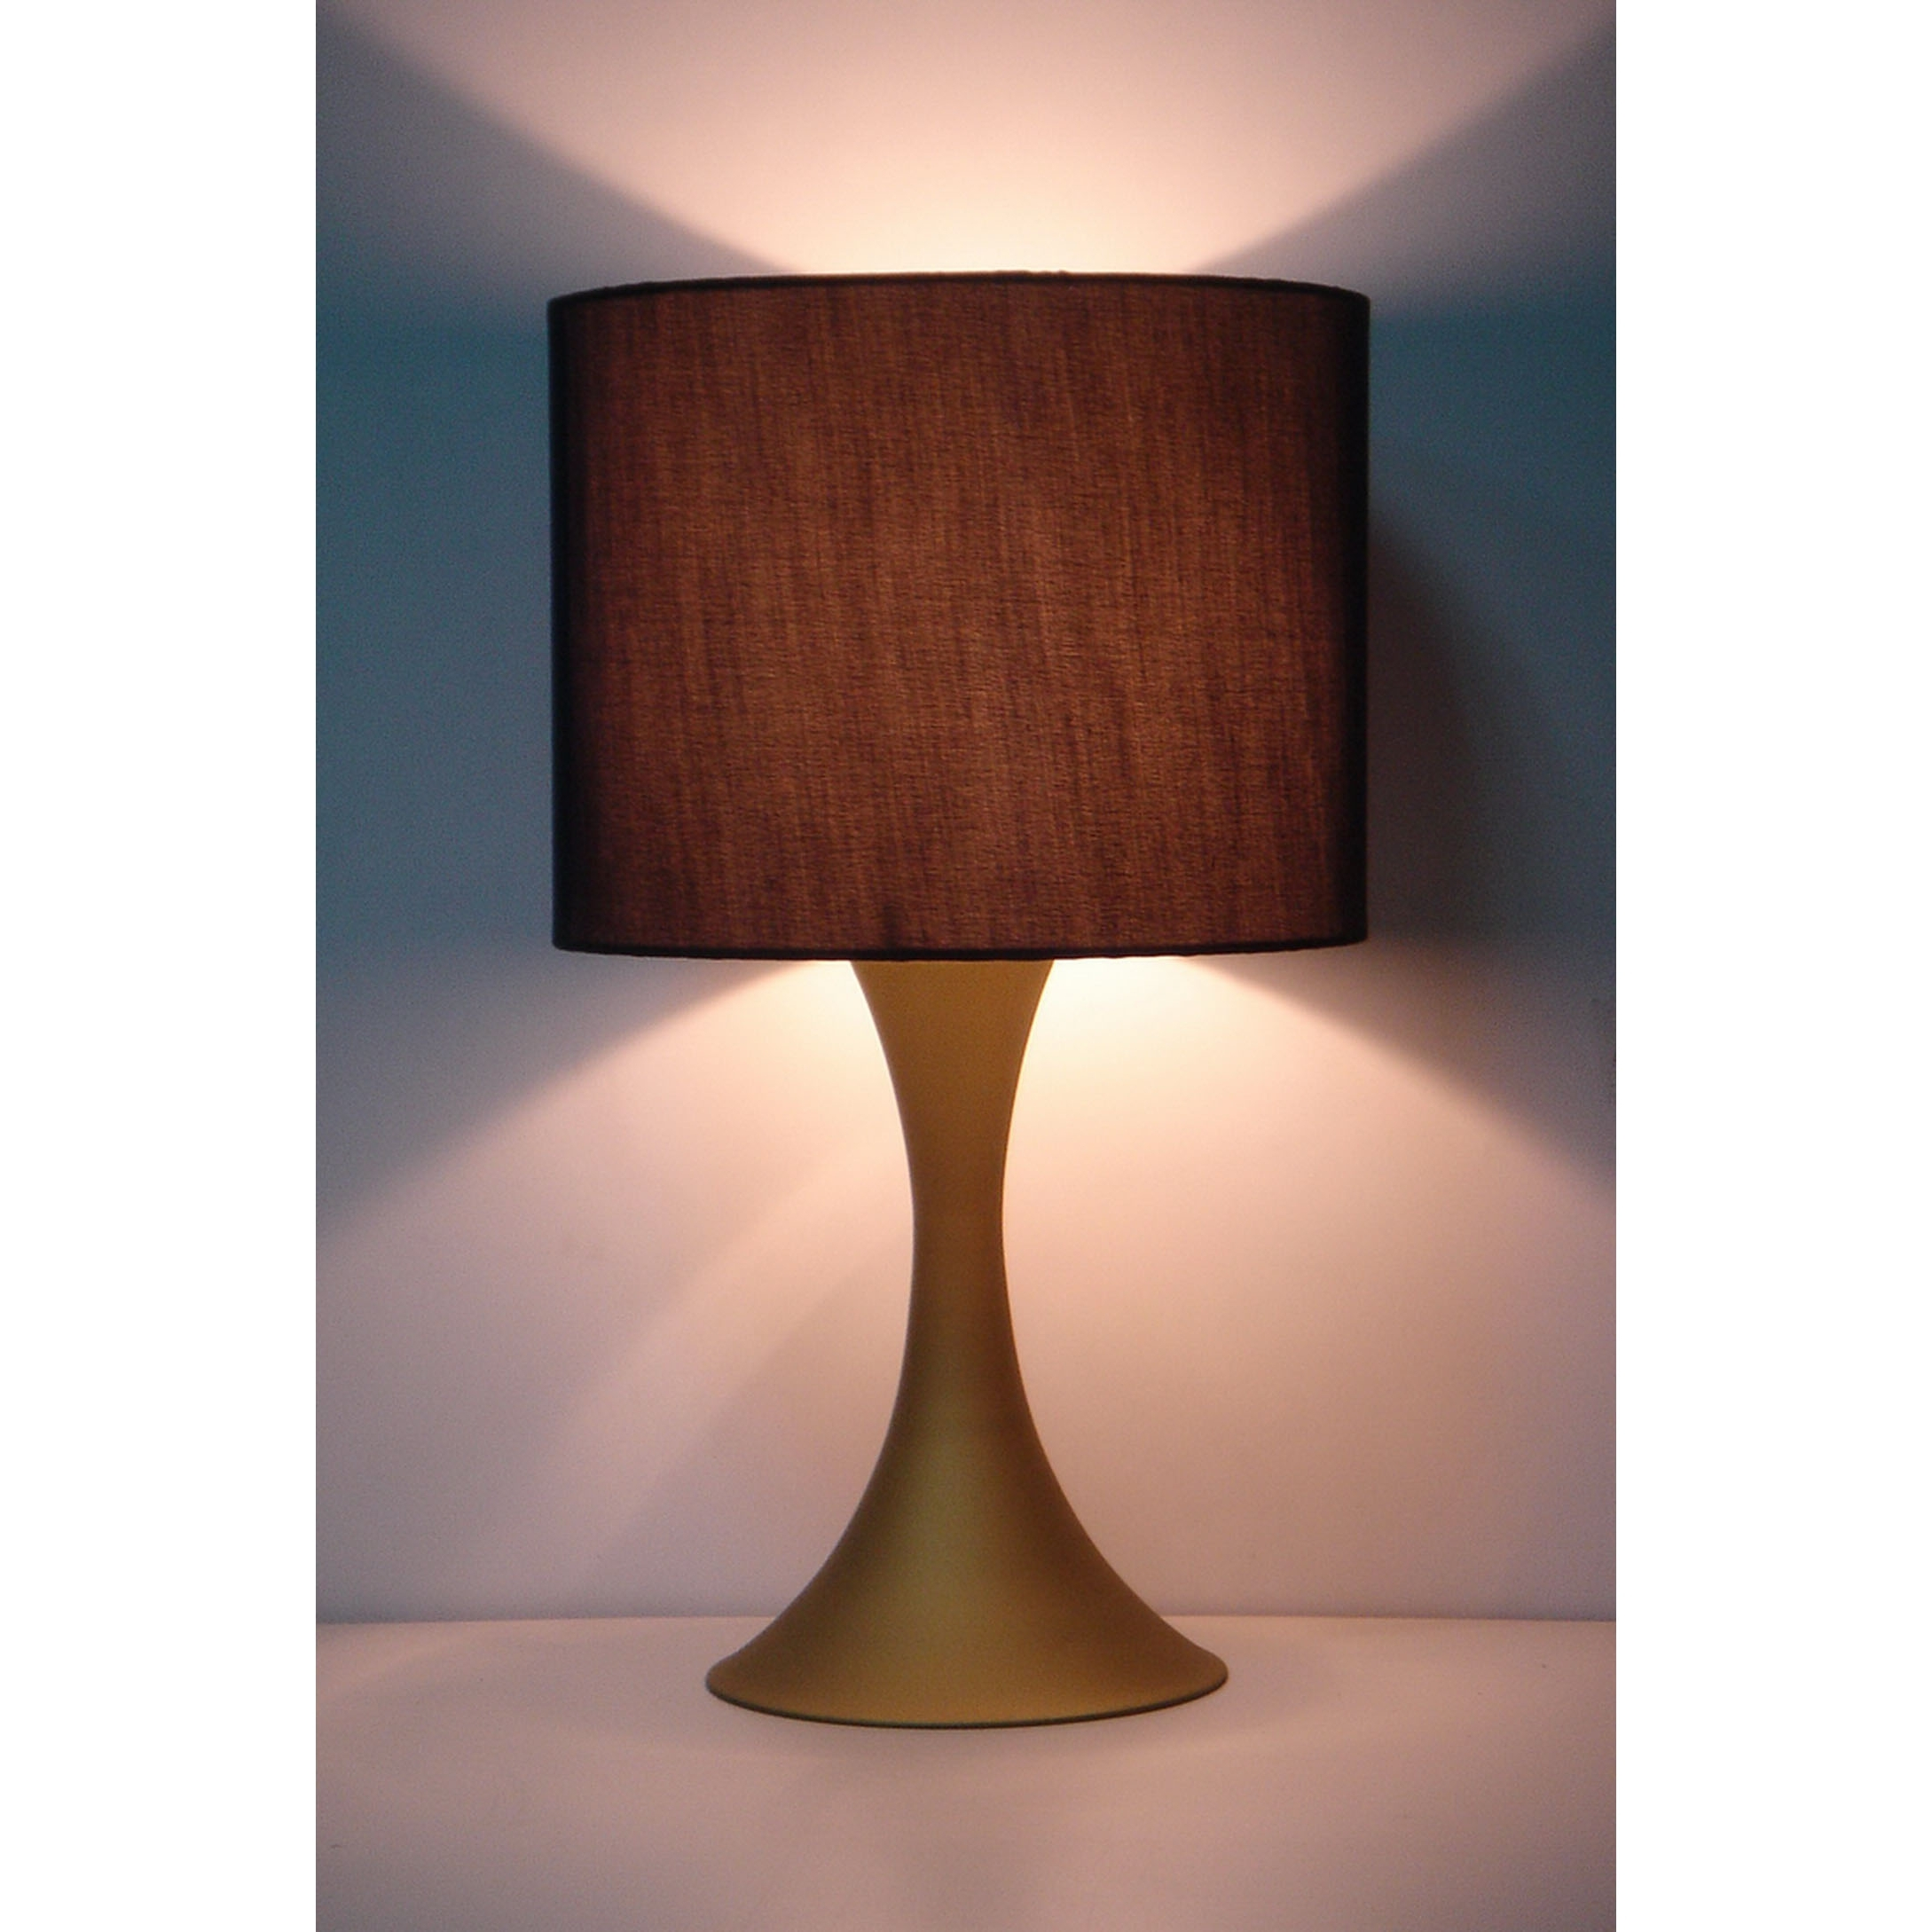 2018 Table Lamps For Living Room At Ebay In Modern Lamp Shades For Table Lamps : Luxury But Quite Cheap (View 14 of 15)